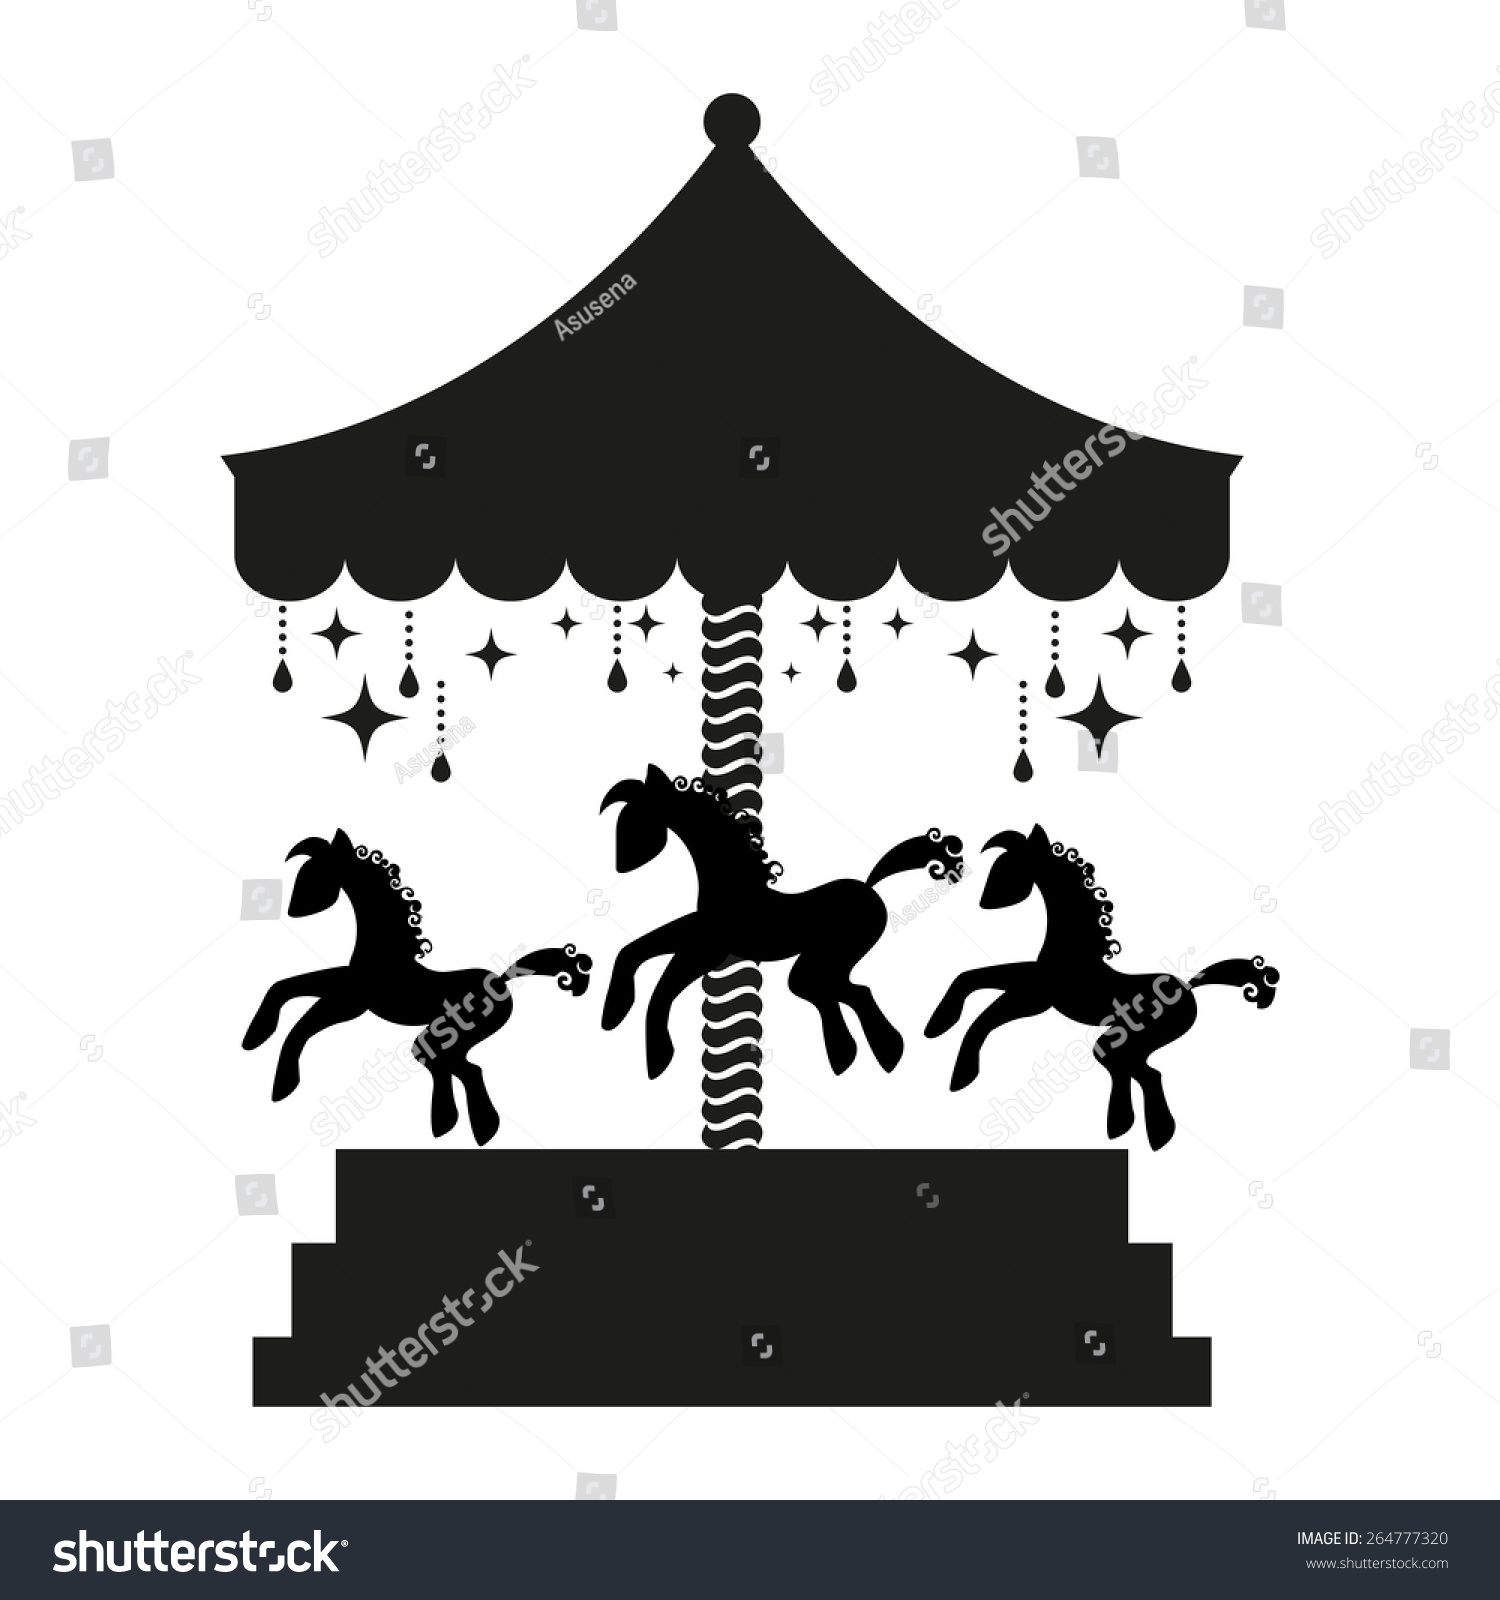 Carousel horse silhouette clip art - photo#19